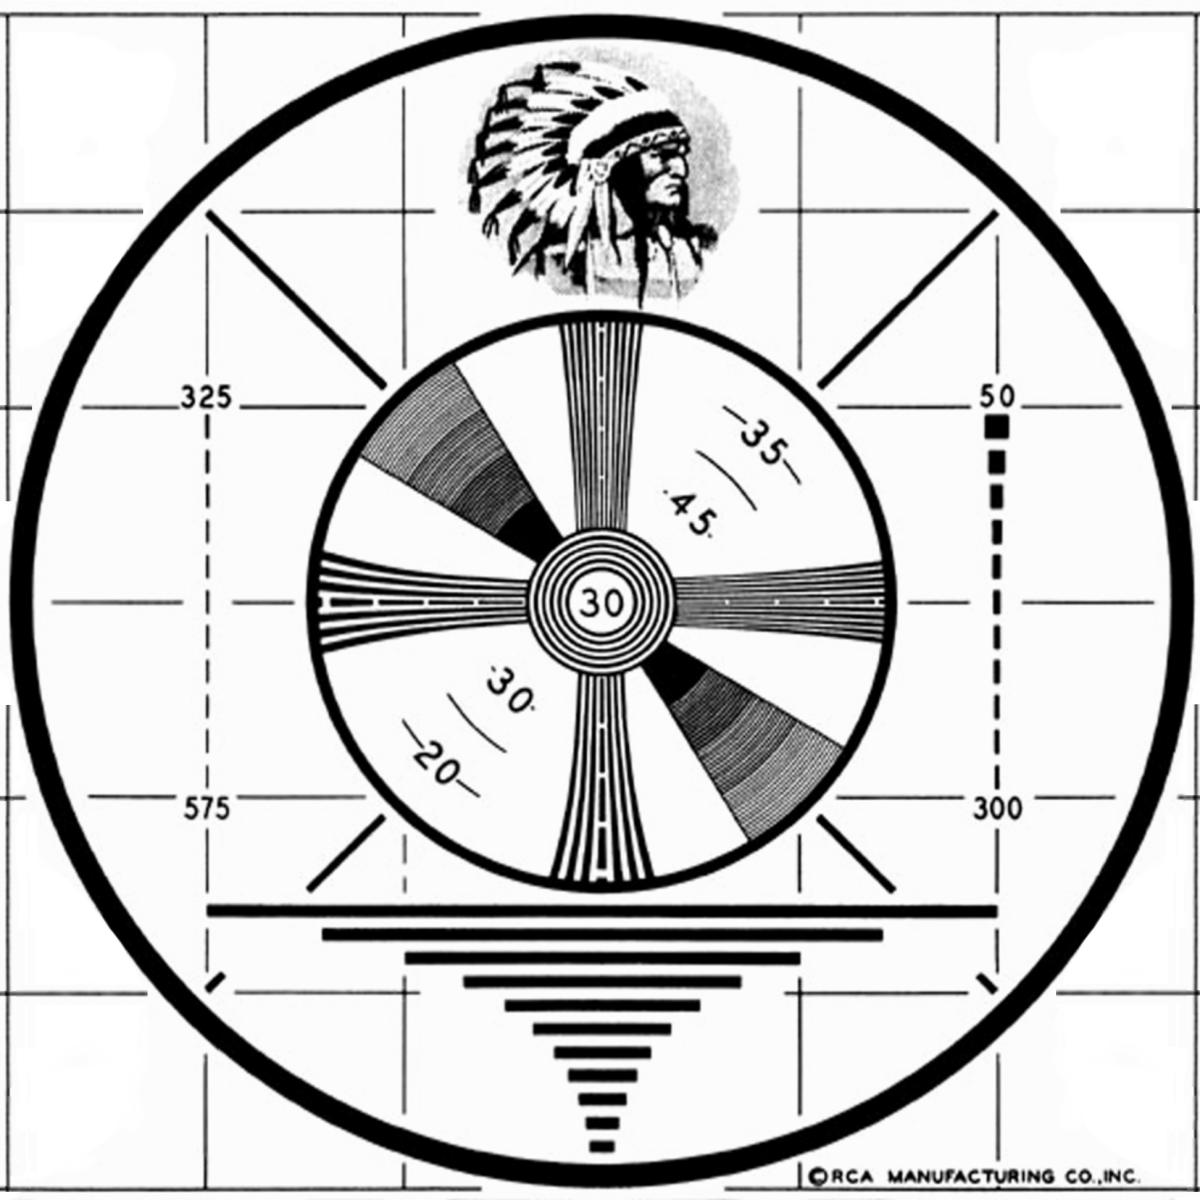 IndianHeadTestPattern16x9-1200x1200.png